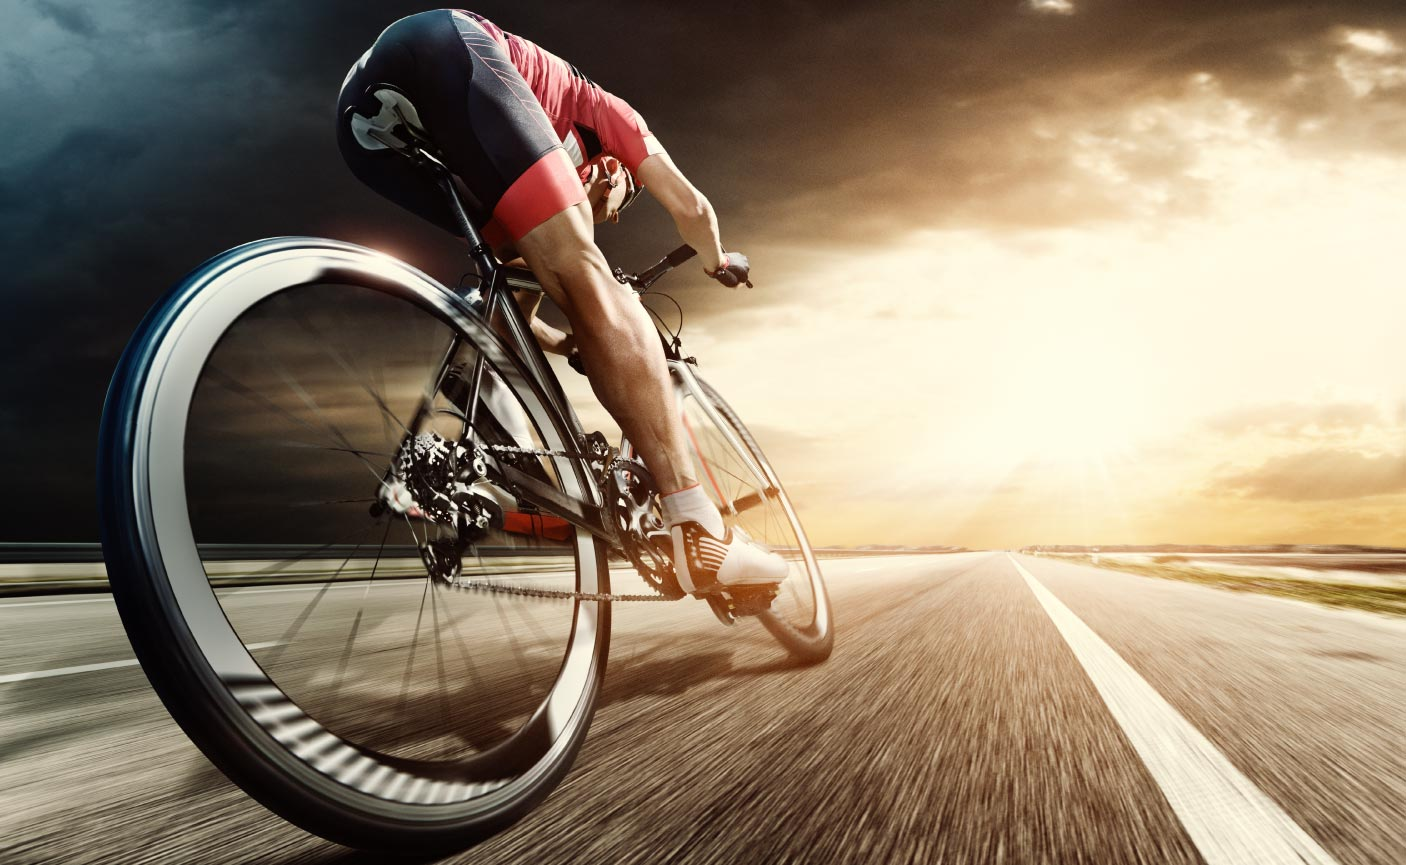 Professional bicycle rider ride fast